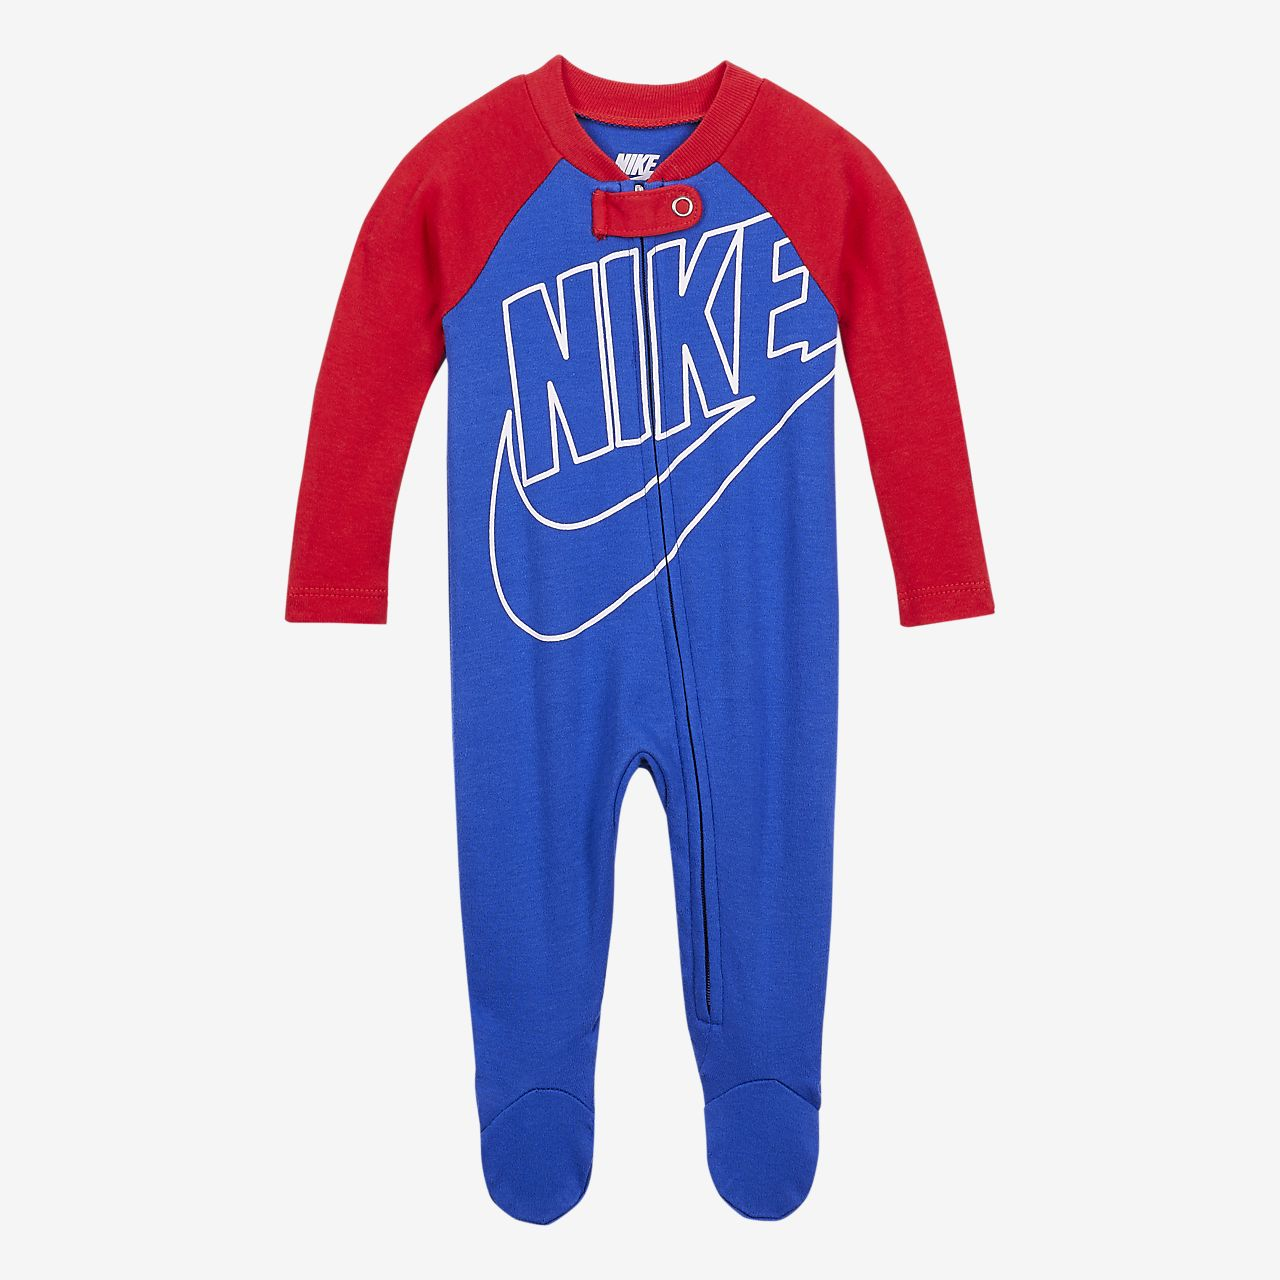 NIKE Childrens Apparel Baby Graphic Footed Coverall